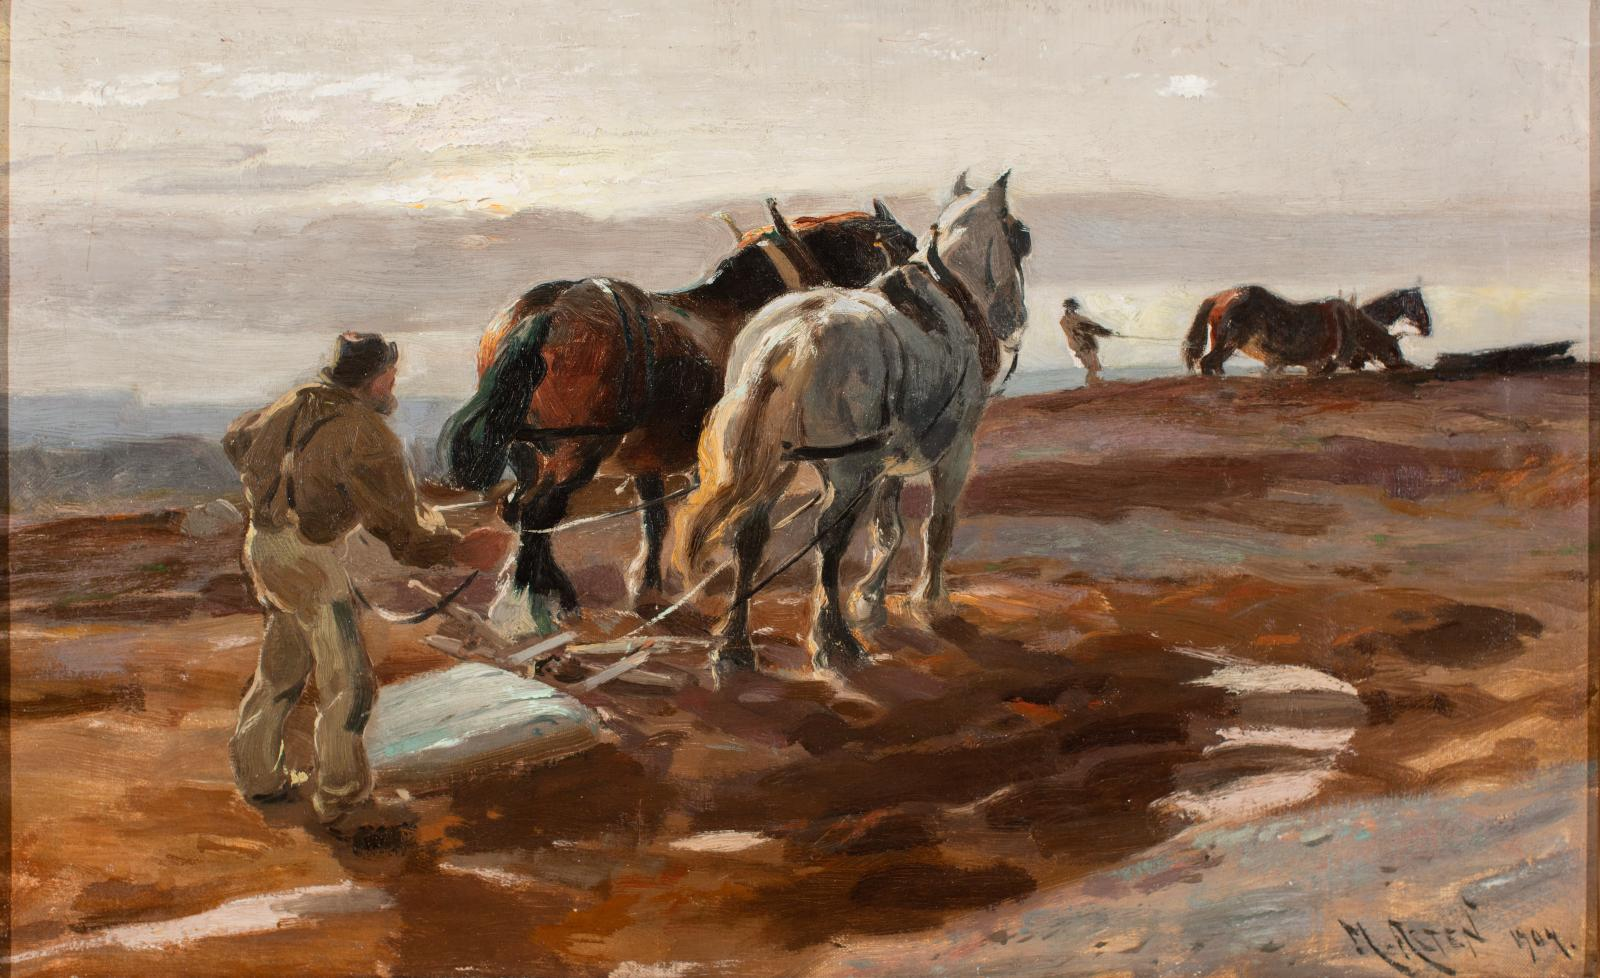 Agricultural scene featuring farmers and horses working in a field at dusk/dawn (pink sky).